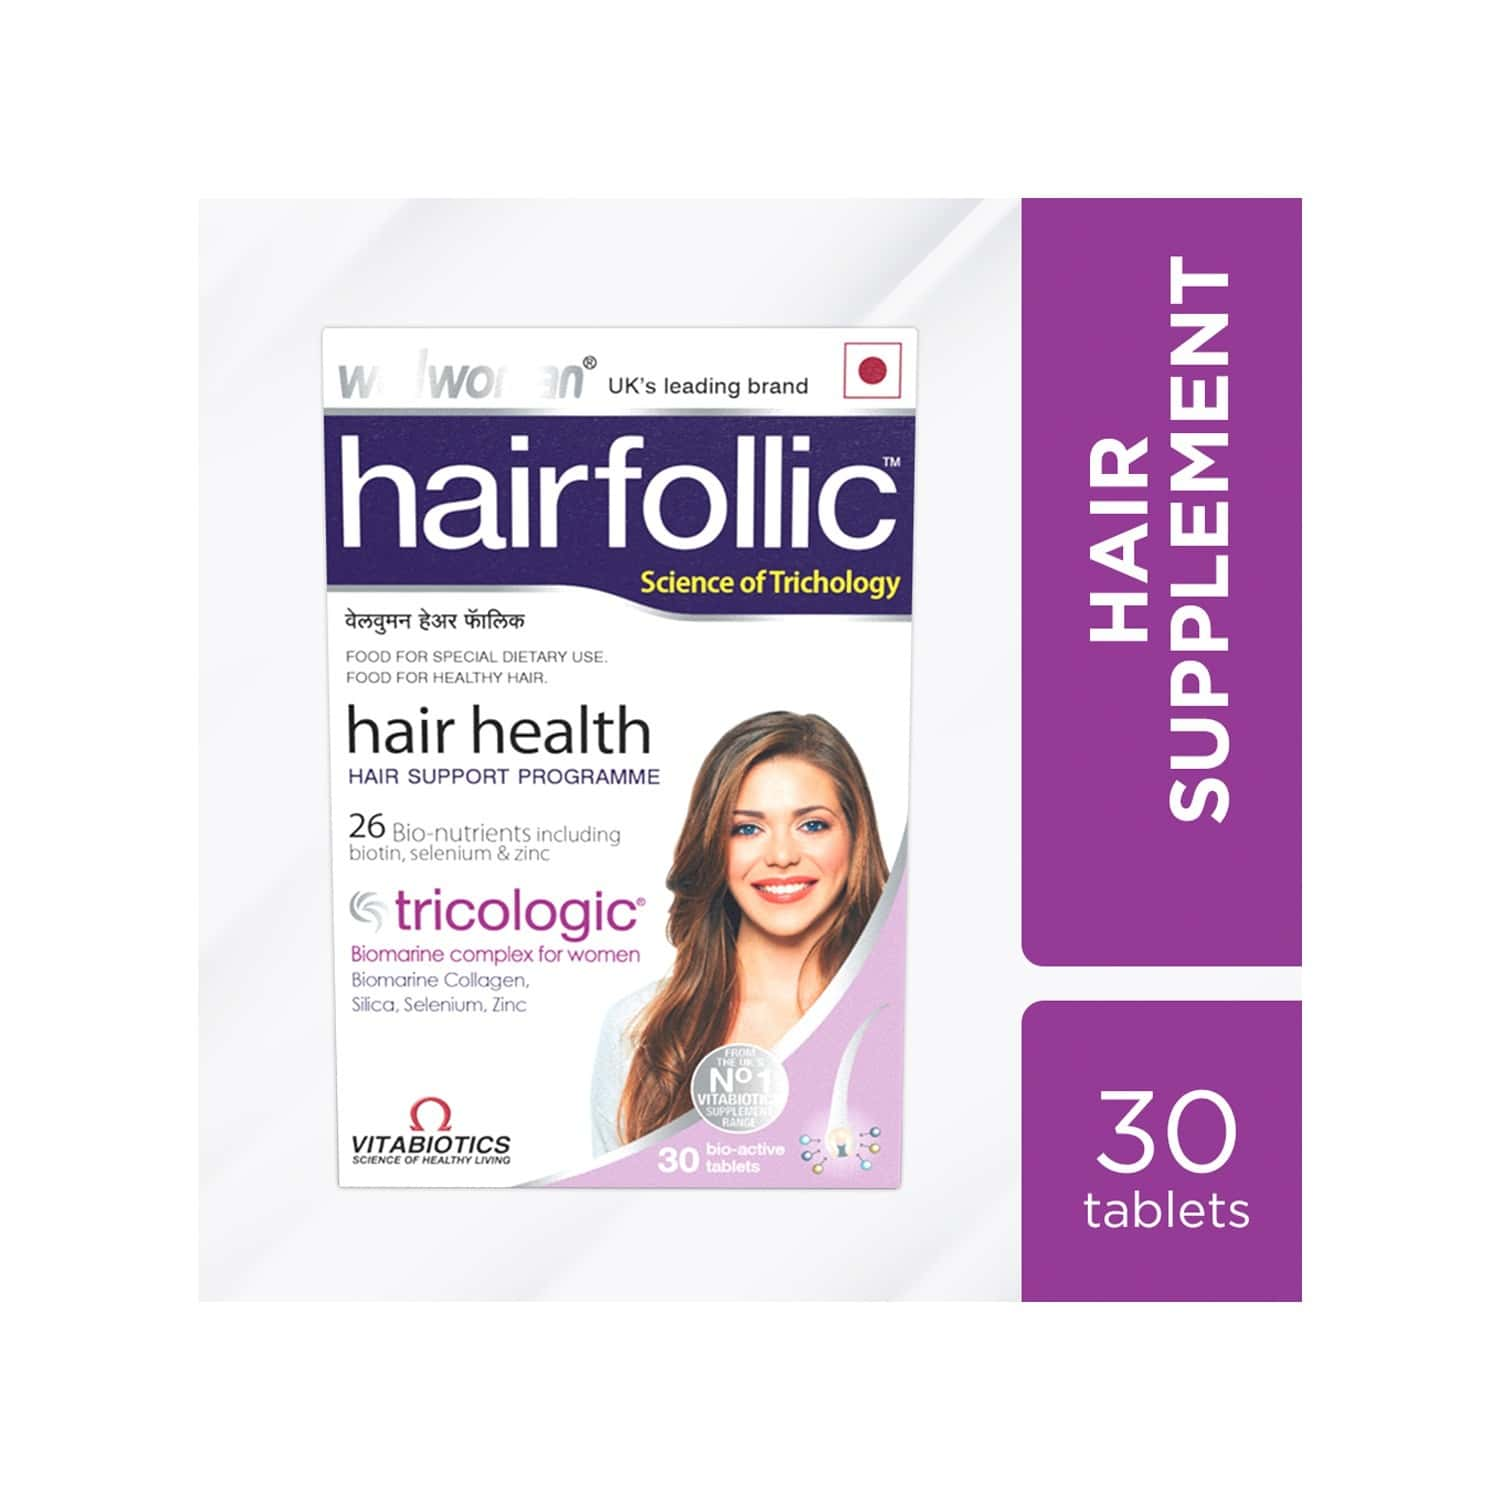 Wellwoman Hairfollic - Hair Supplements (26 Nutrients) - 30 Tablets